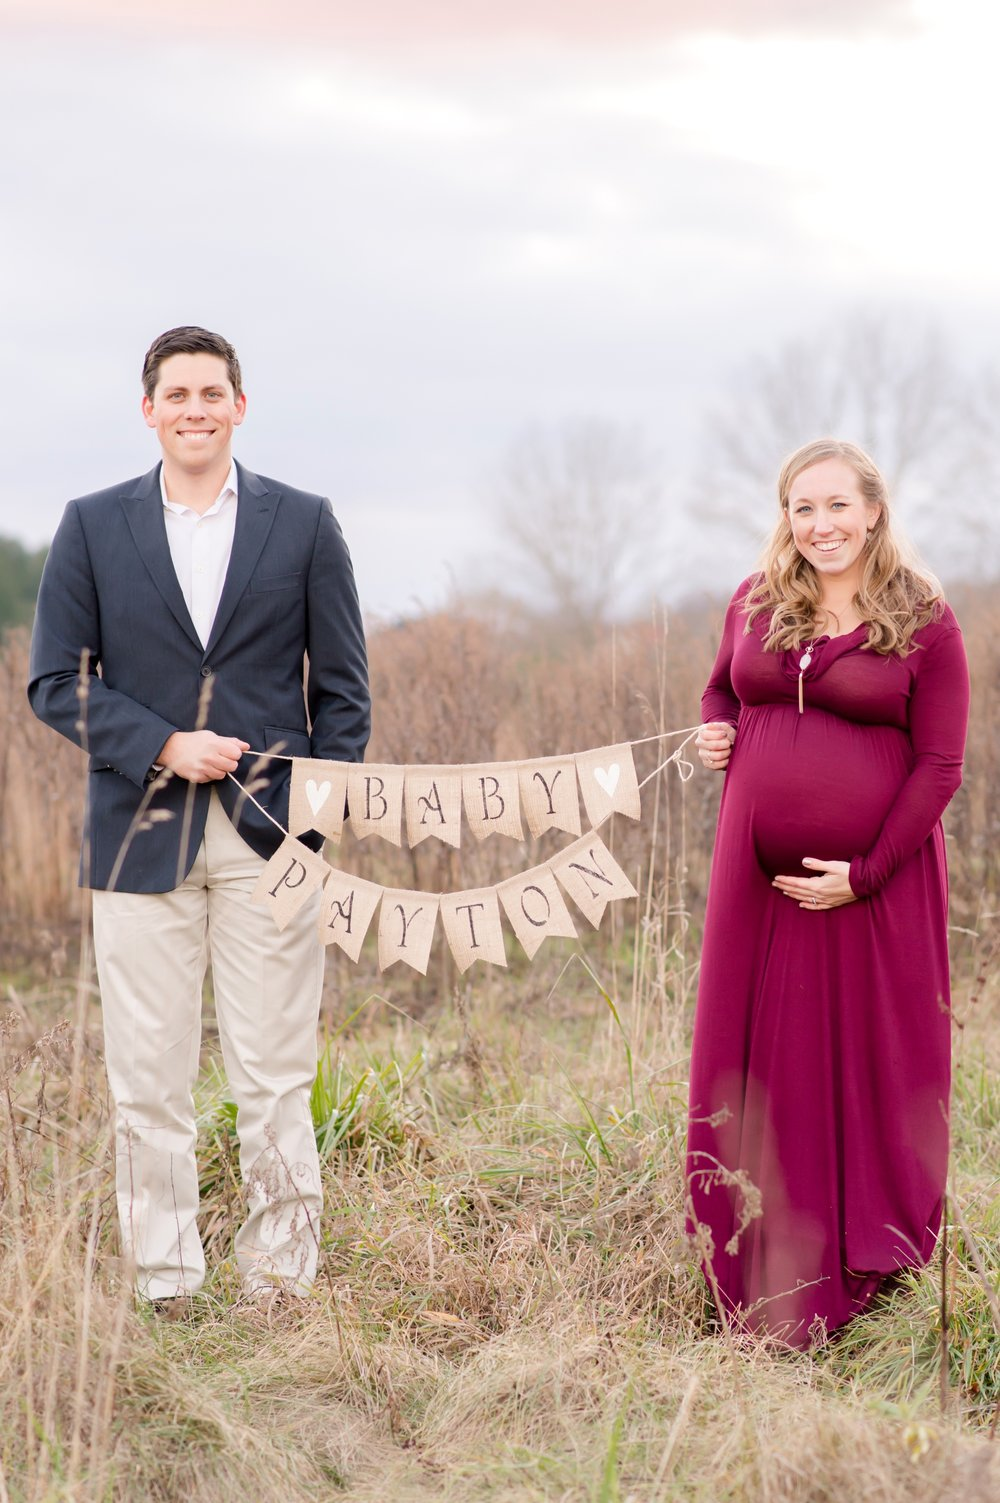 AG and Kevin Maternity-377_anna grace photography baltimore maryland maternity photographer cromwell valley park photo.jpg